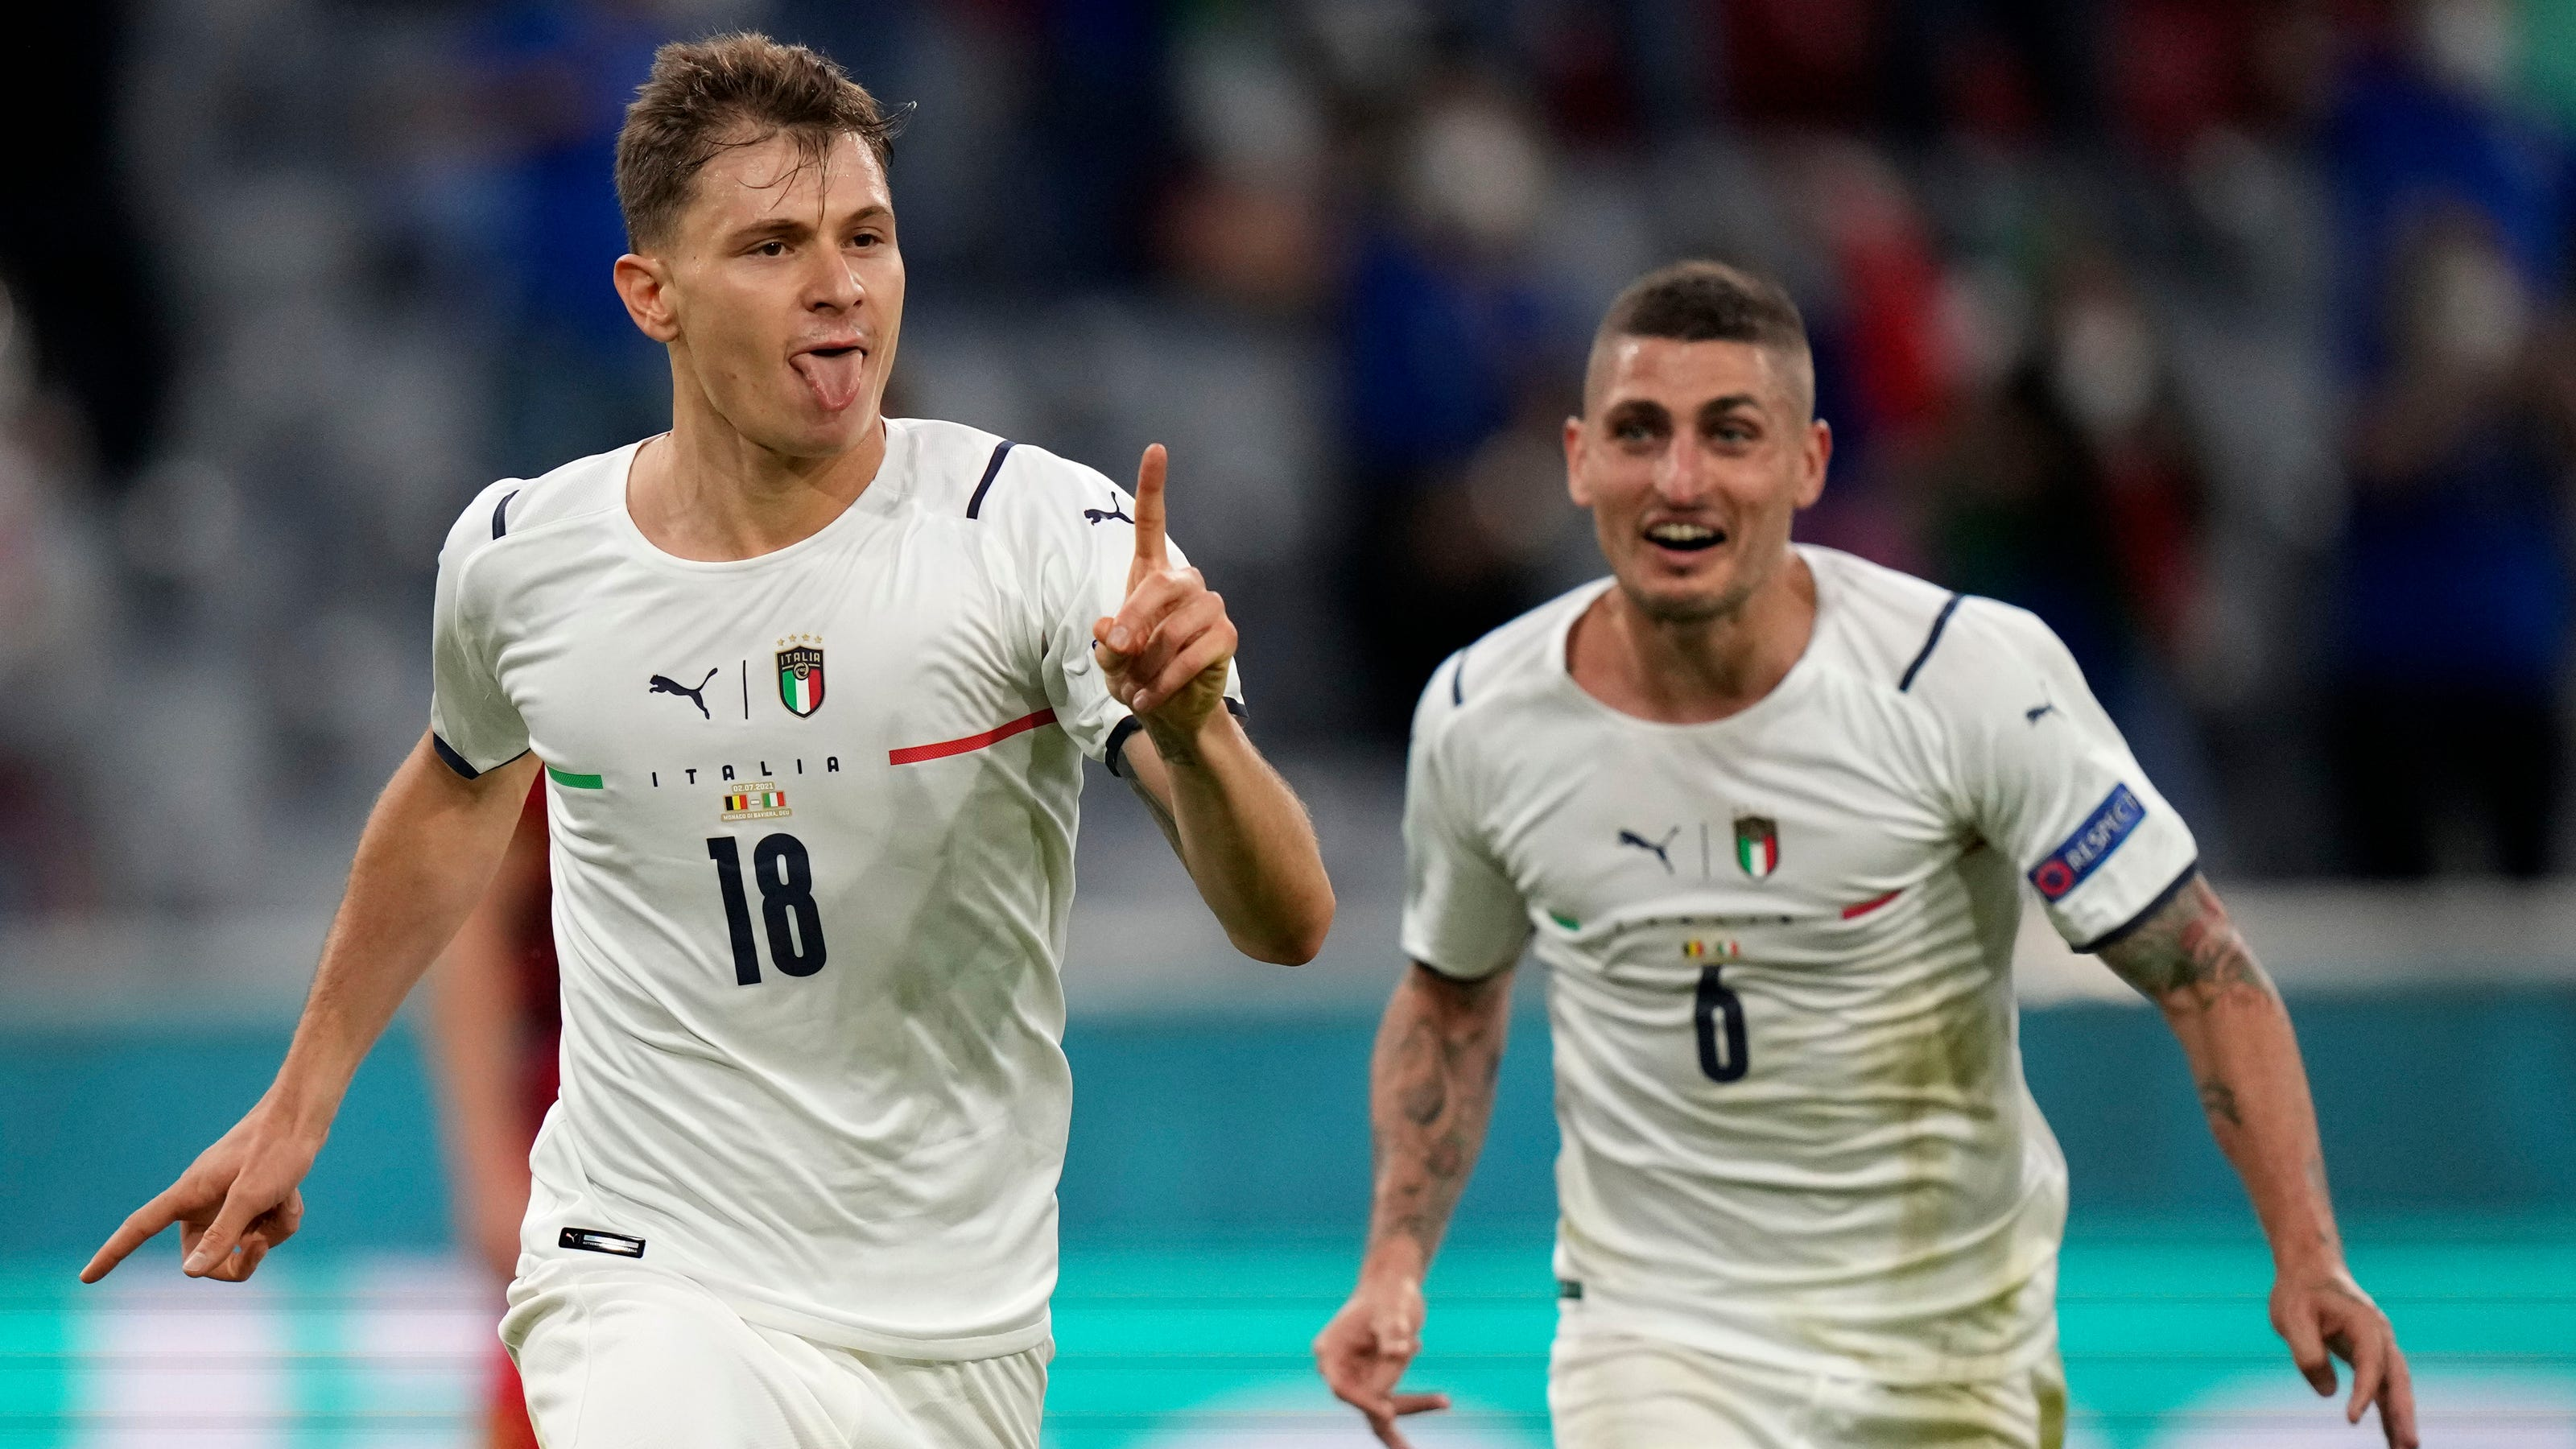 UEFA Euro 2020 semifinals: Live stream, how to watch on TV, betting odds, game times